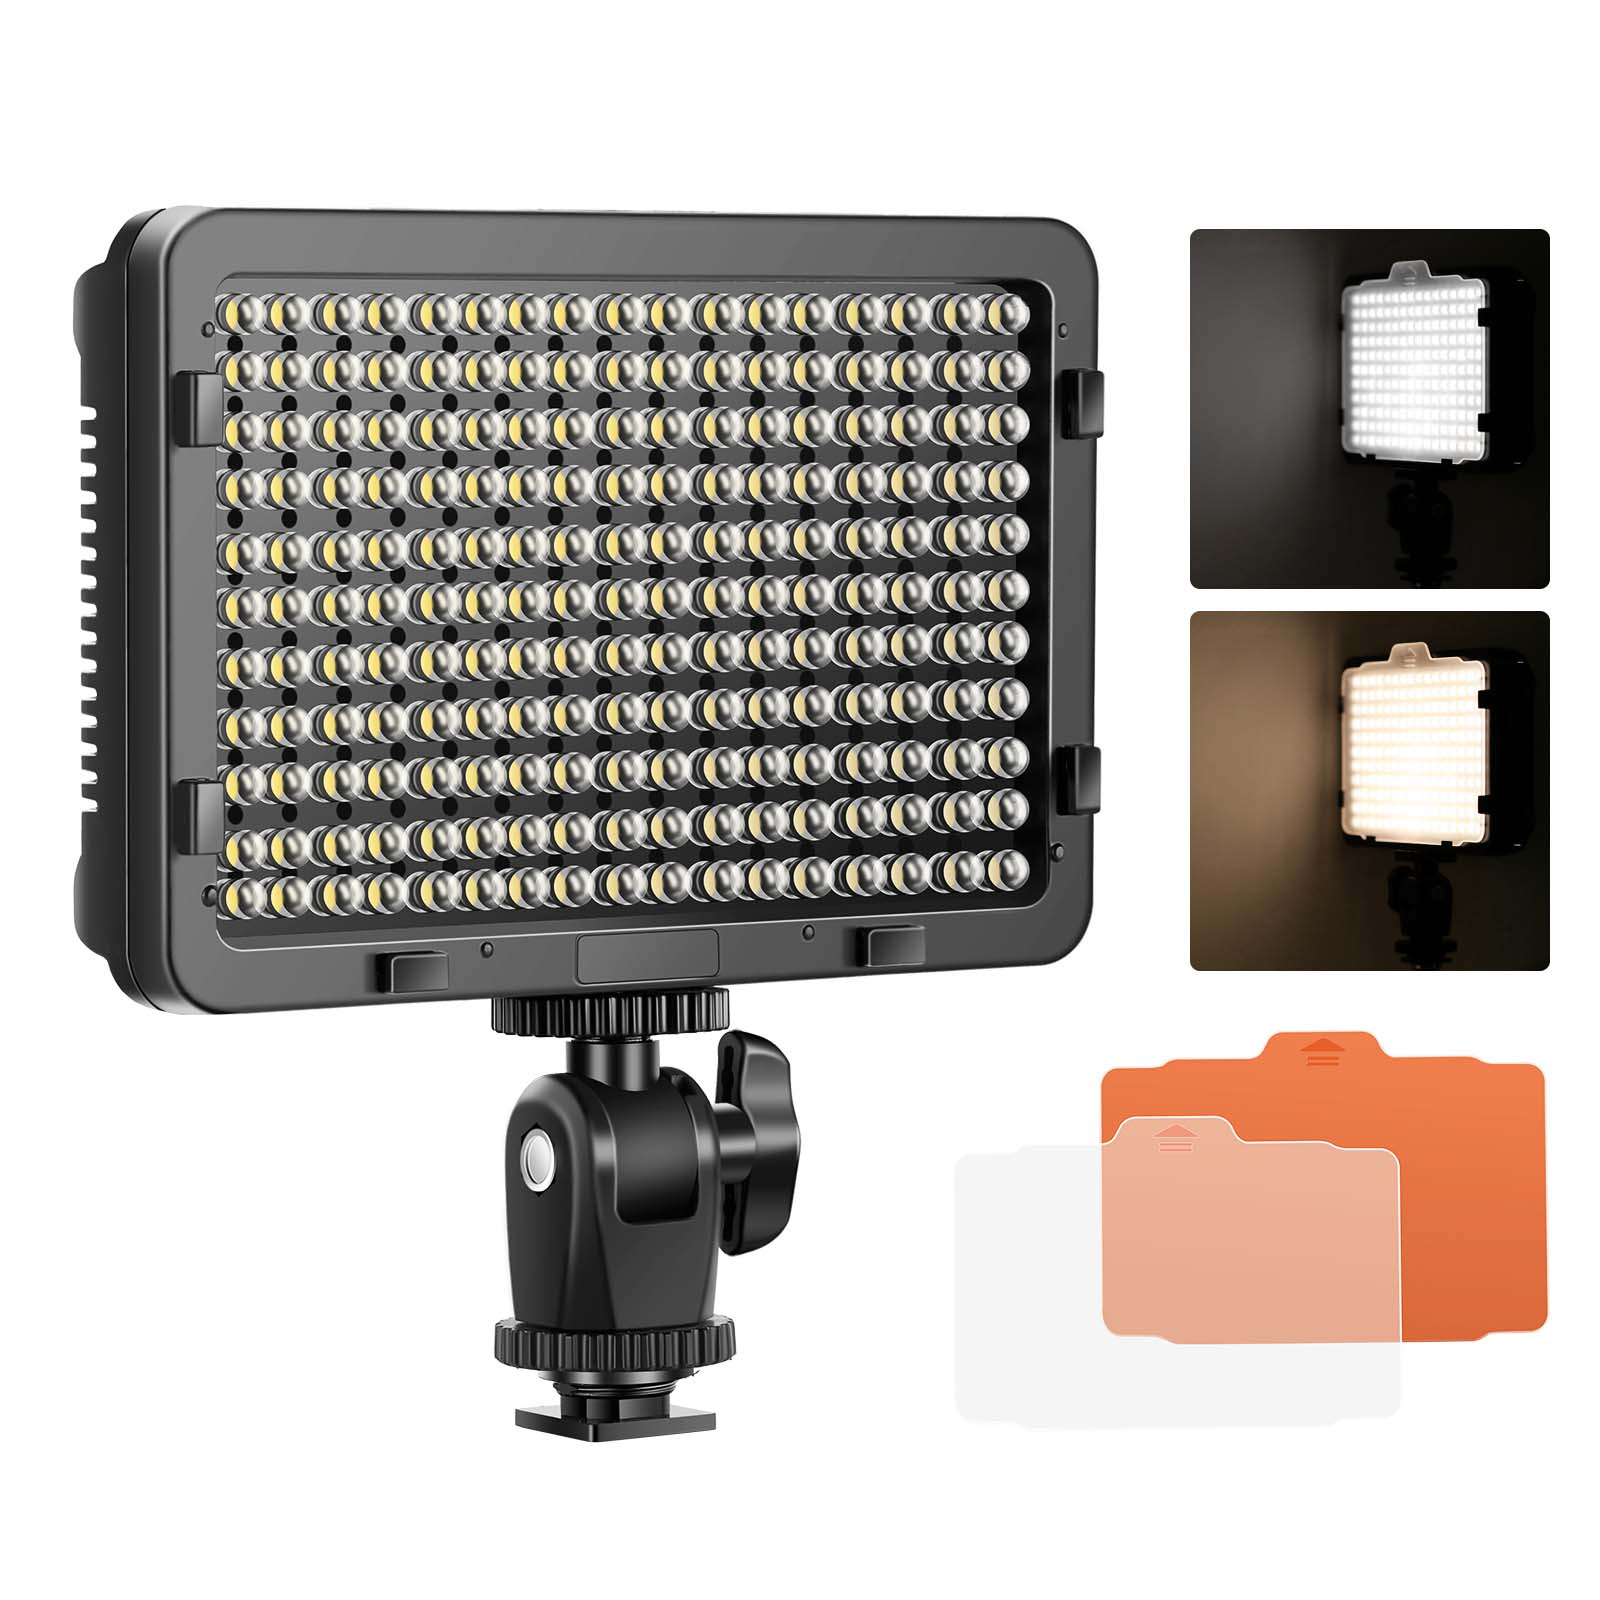 Led Studio Light Repair: Neewer Photo Studio 176 LED Dimmable On Camera Video Light